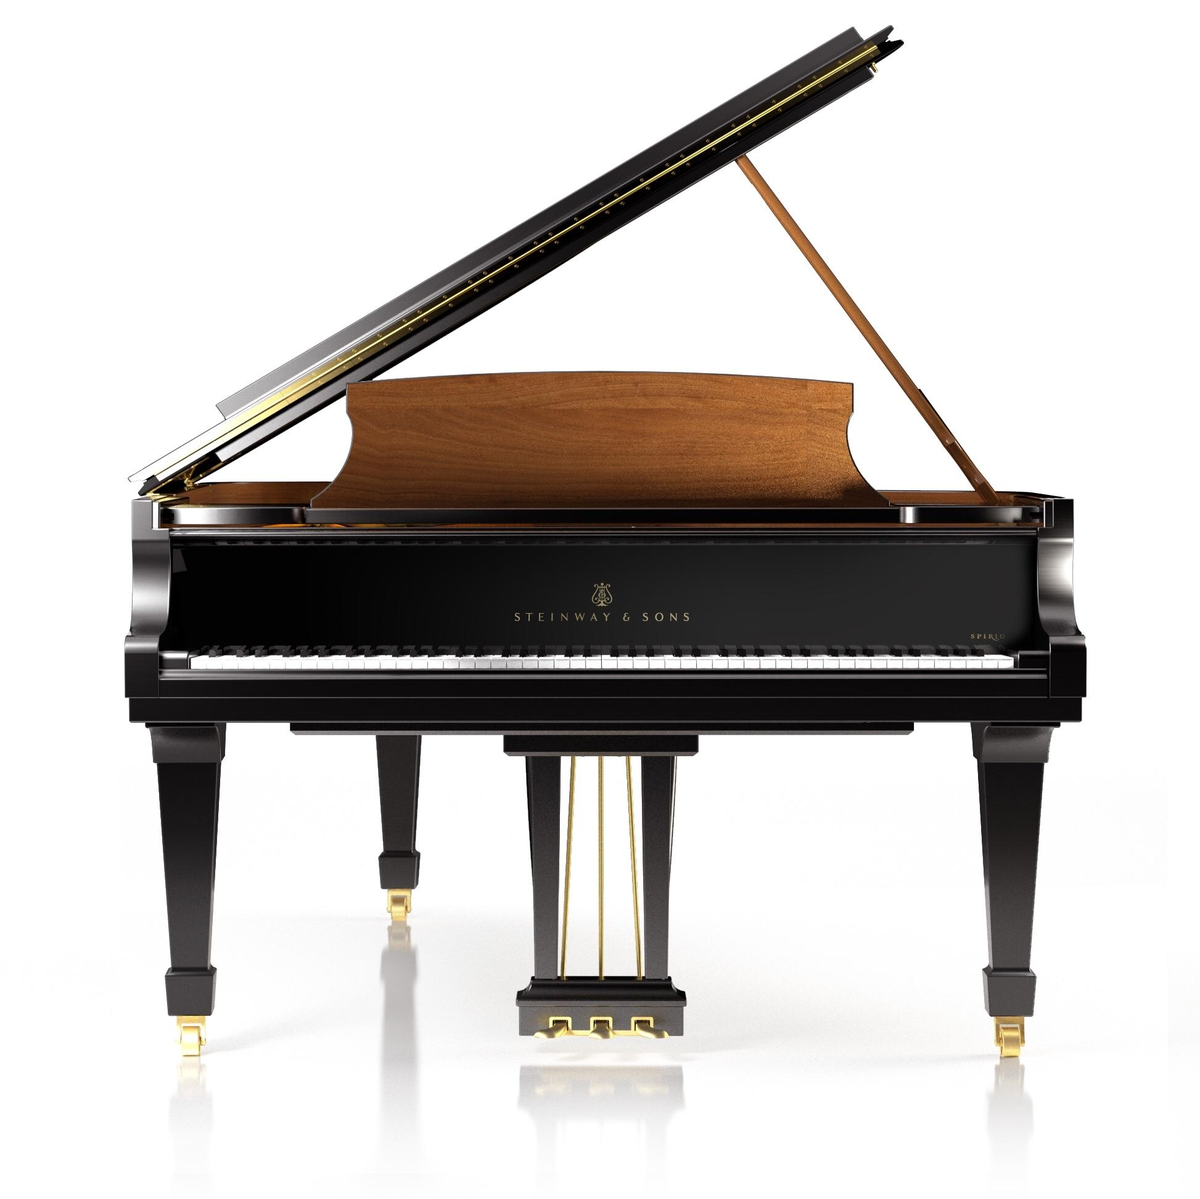 Reloaded twaddle – RT @SteinwayAndSons: To celebrate Steinway's 165th year, #Steinway is pleased to...